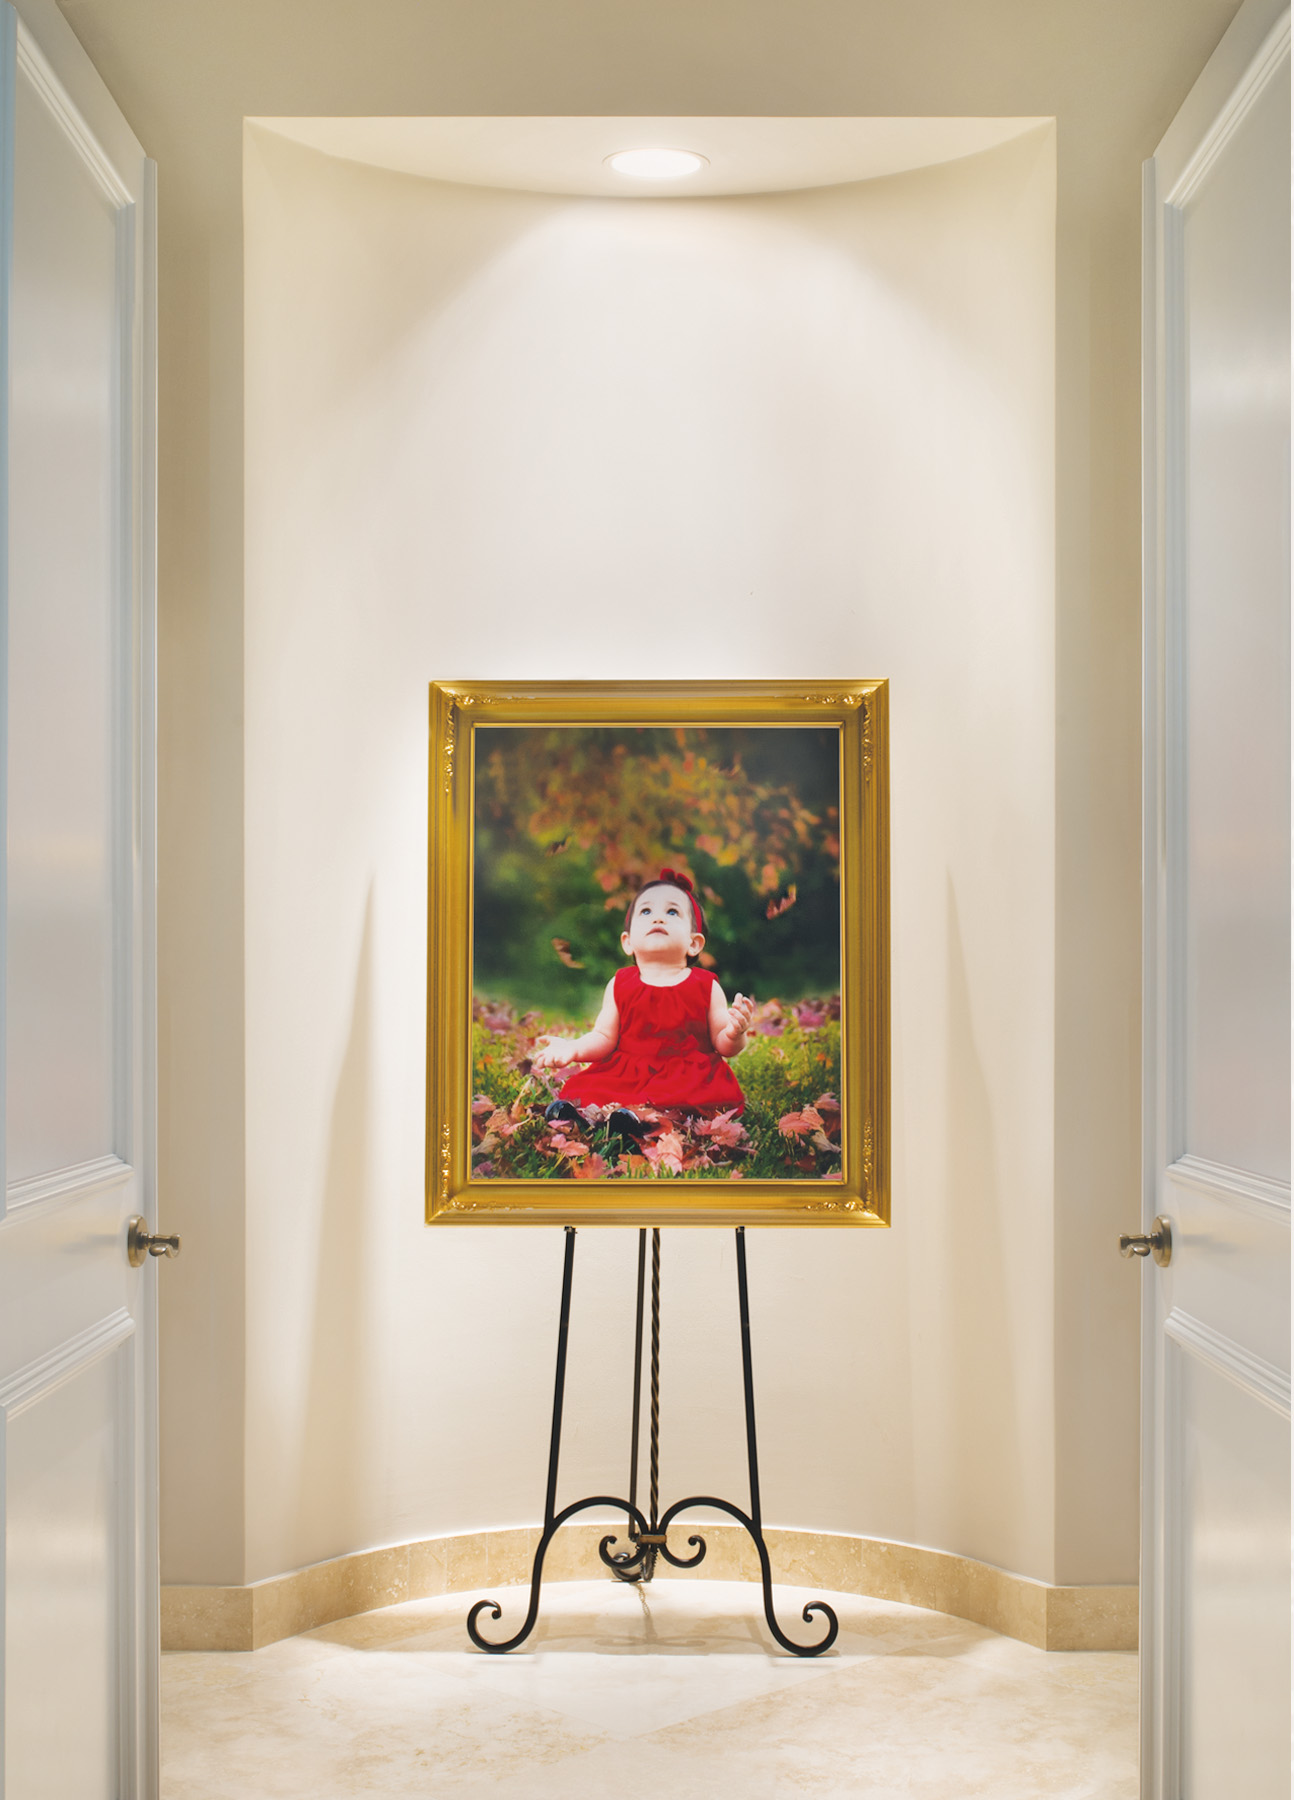 IMPACT - Fine Art Portraits are natural focal points. We carefully select your Family's Portrait placement and design elements–theme, style, color scheme, finish, size and frame- to attain visual impact and perfect integration with your décor.